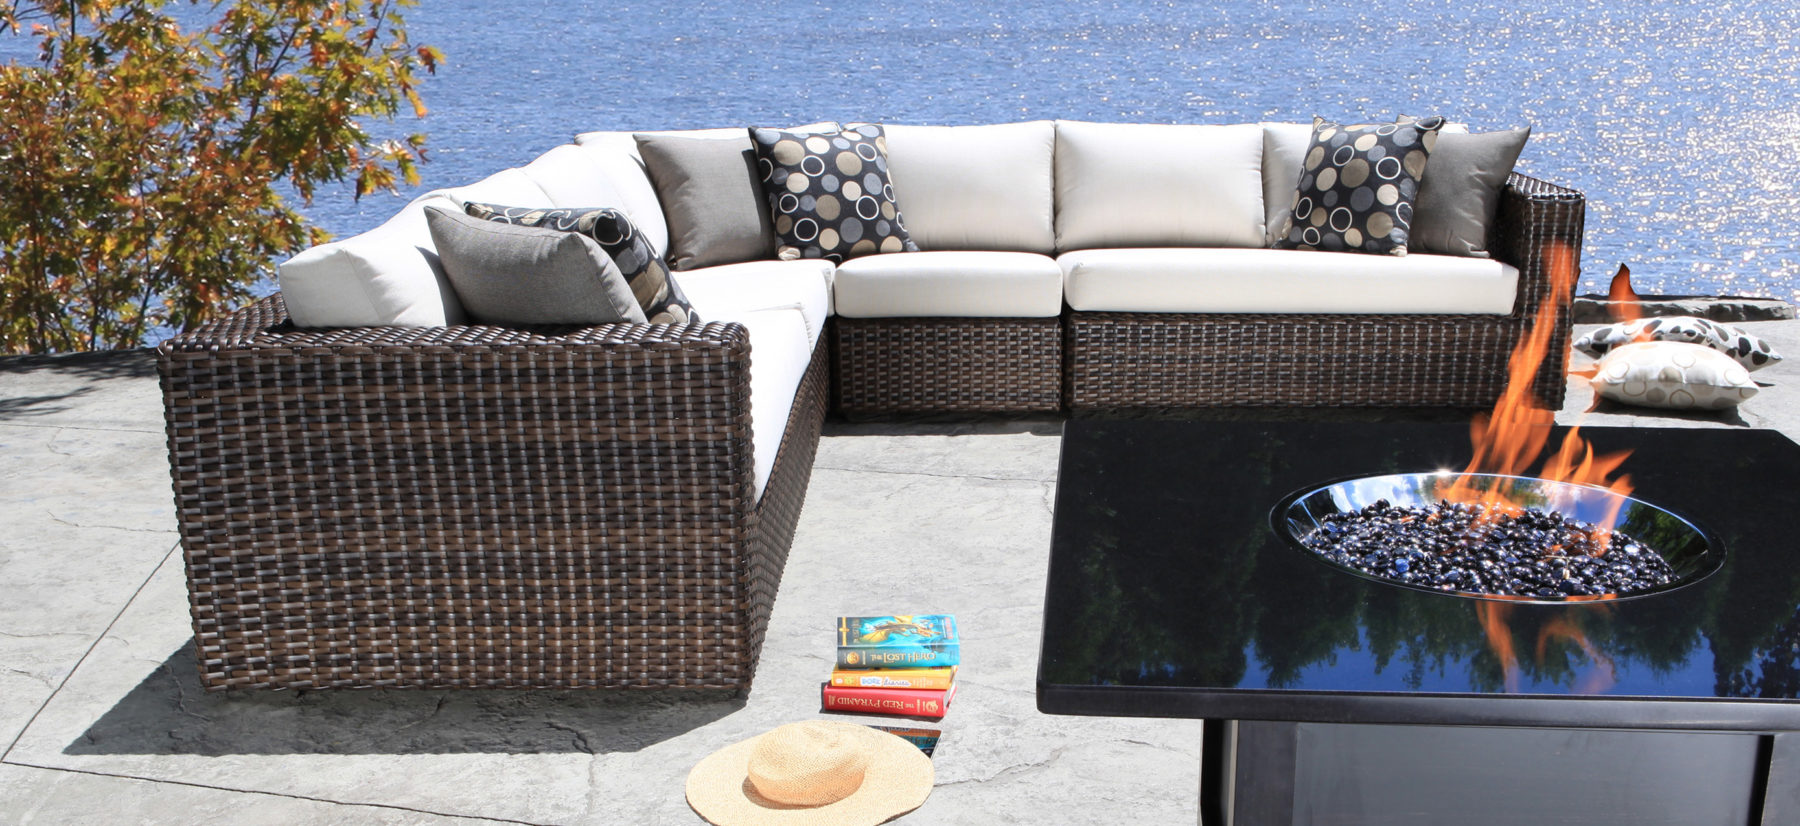 patio furniture is your destination for indoor and outdoor furnitures